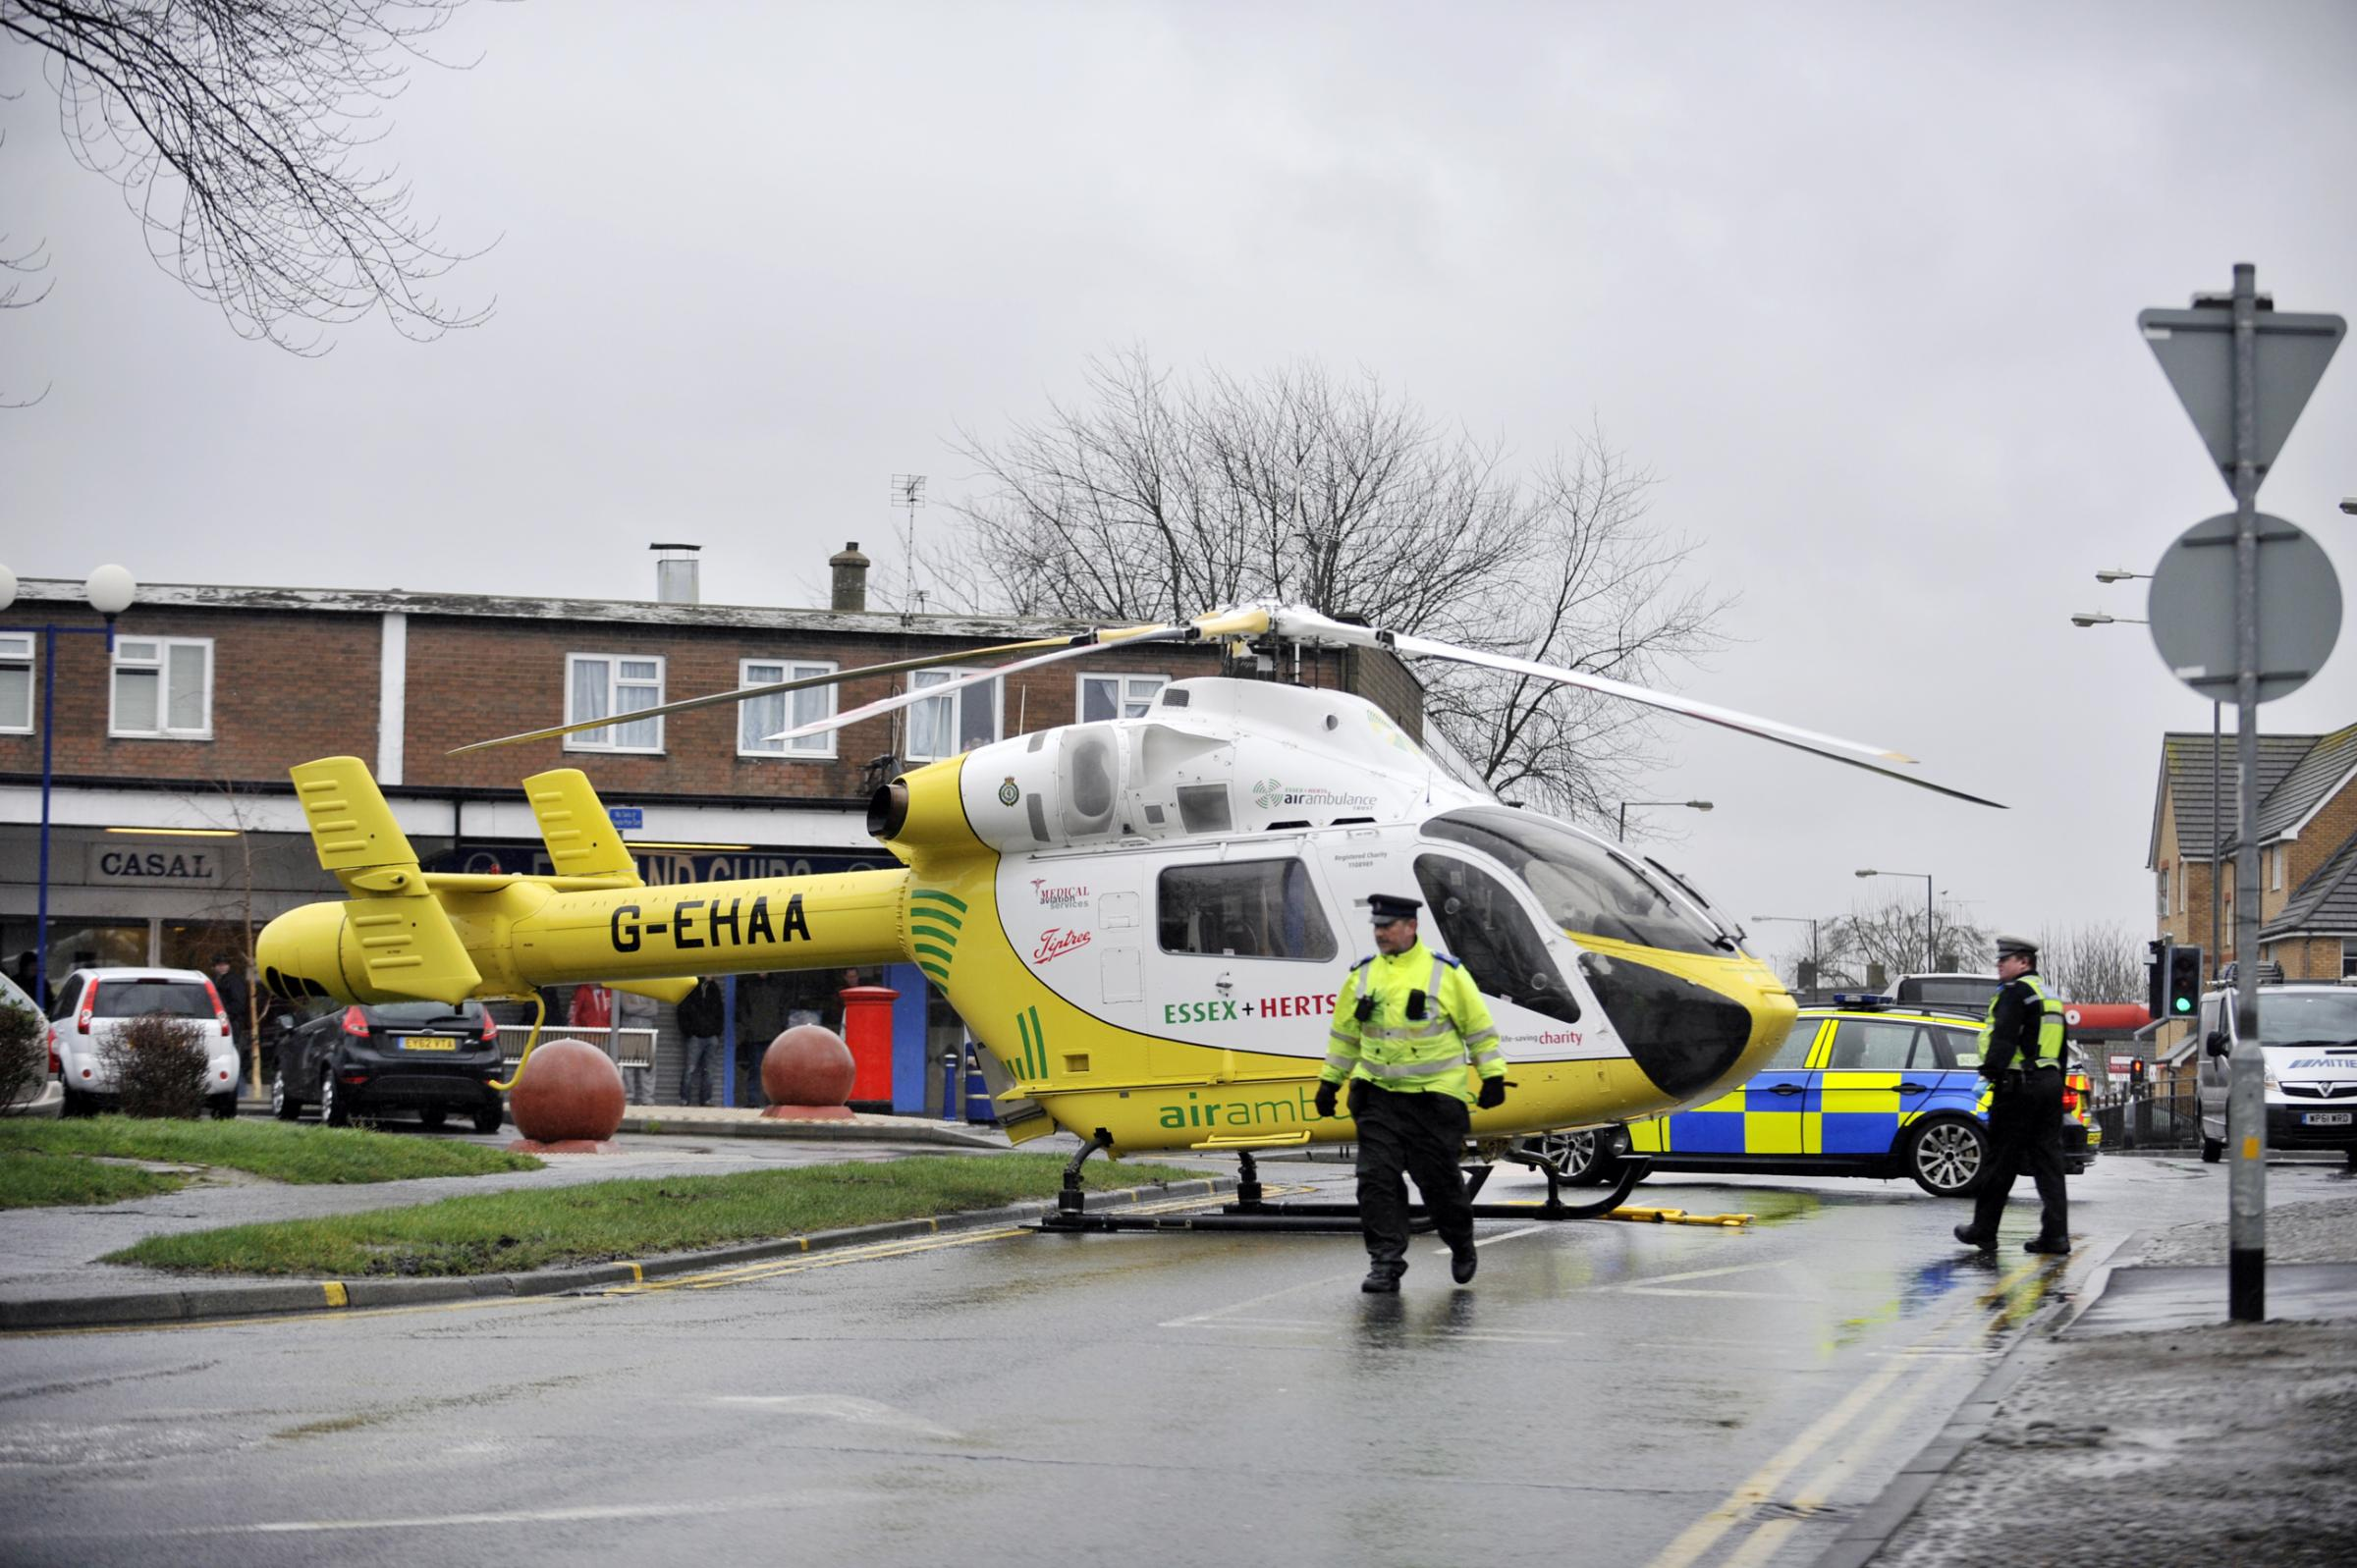 Updated: Motorcyclist in critical condition following Basildon crash